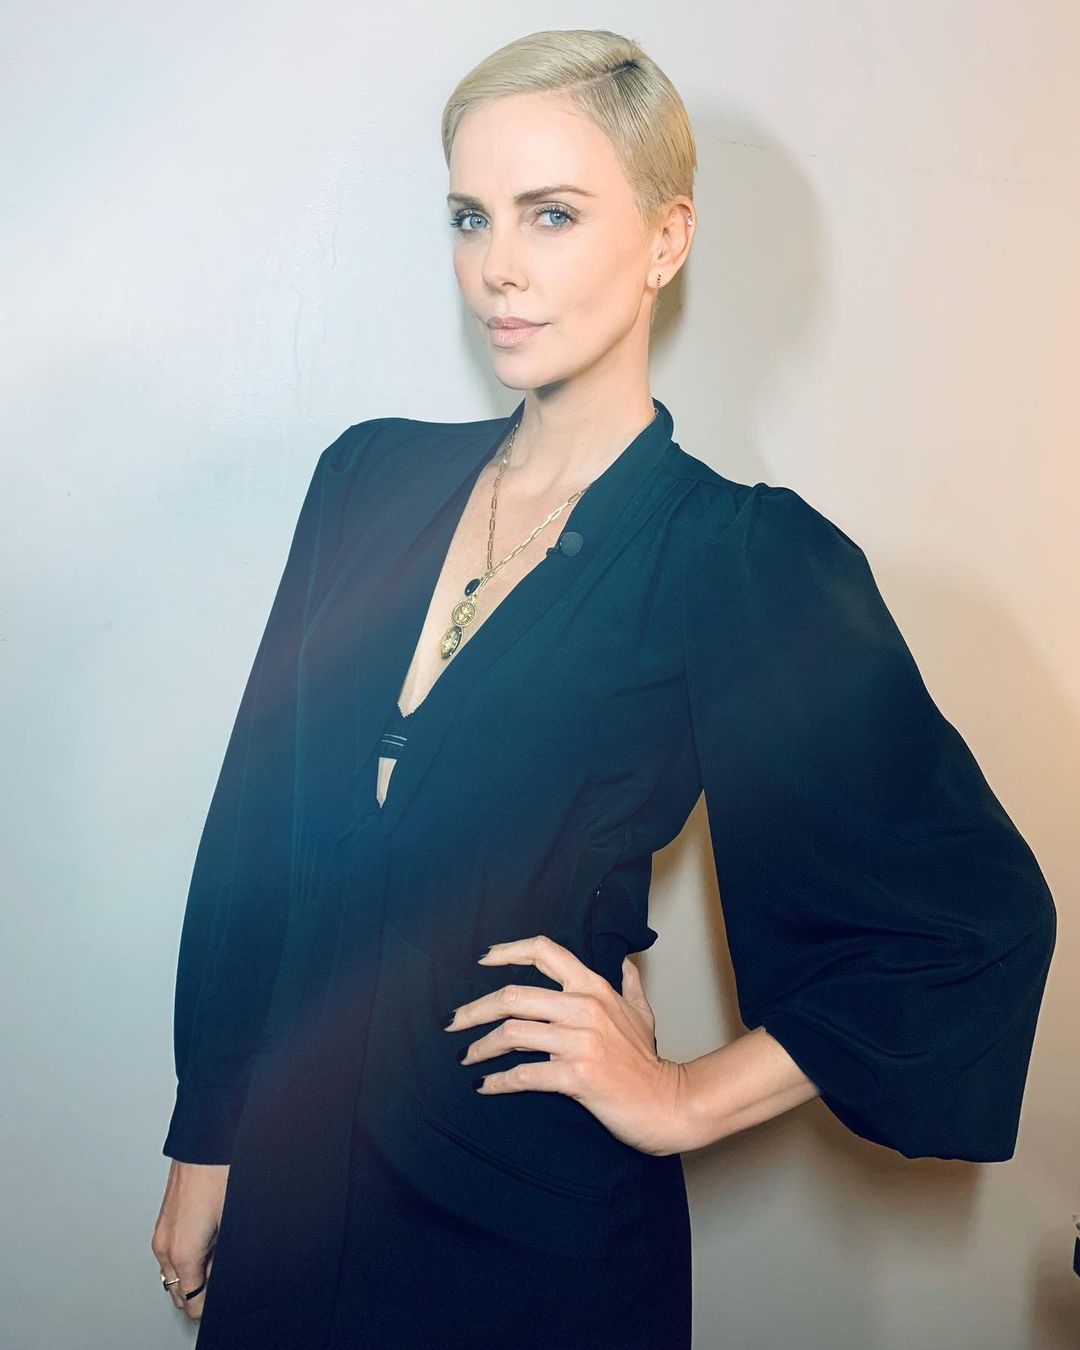 Charlize Theron, 45 anos (Foto: Instagram/@charlizeafric)